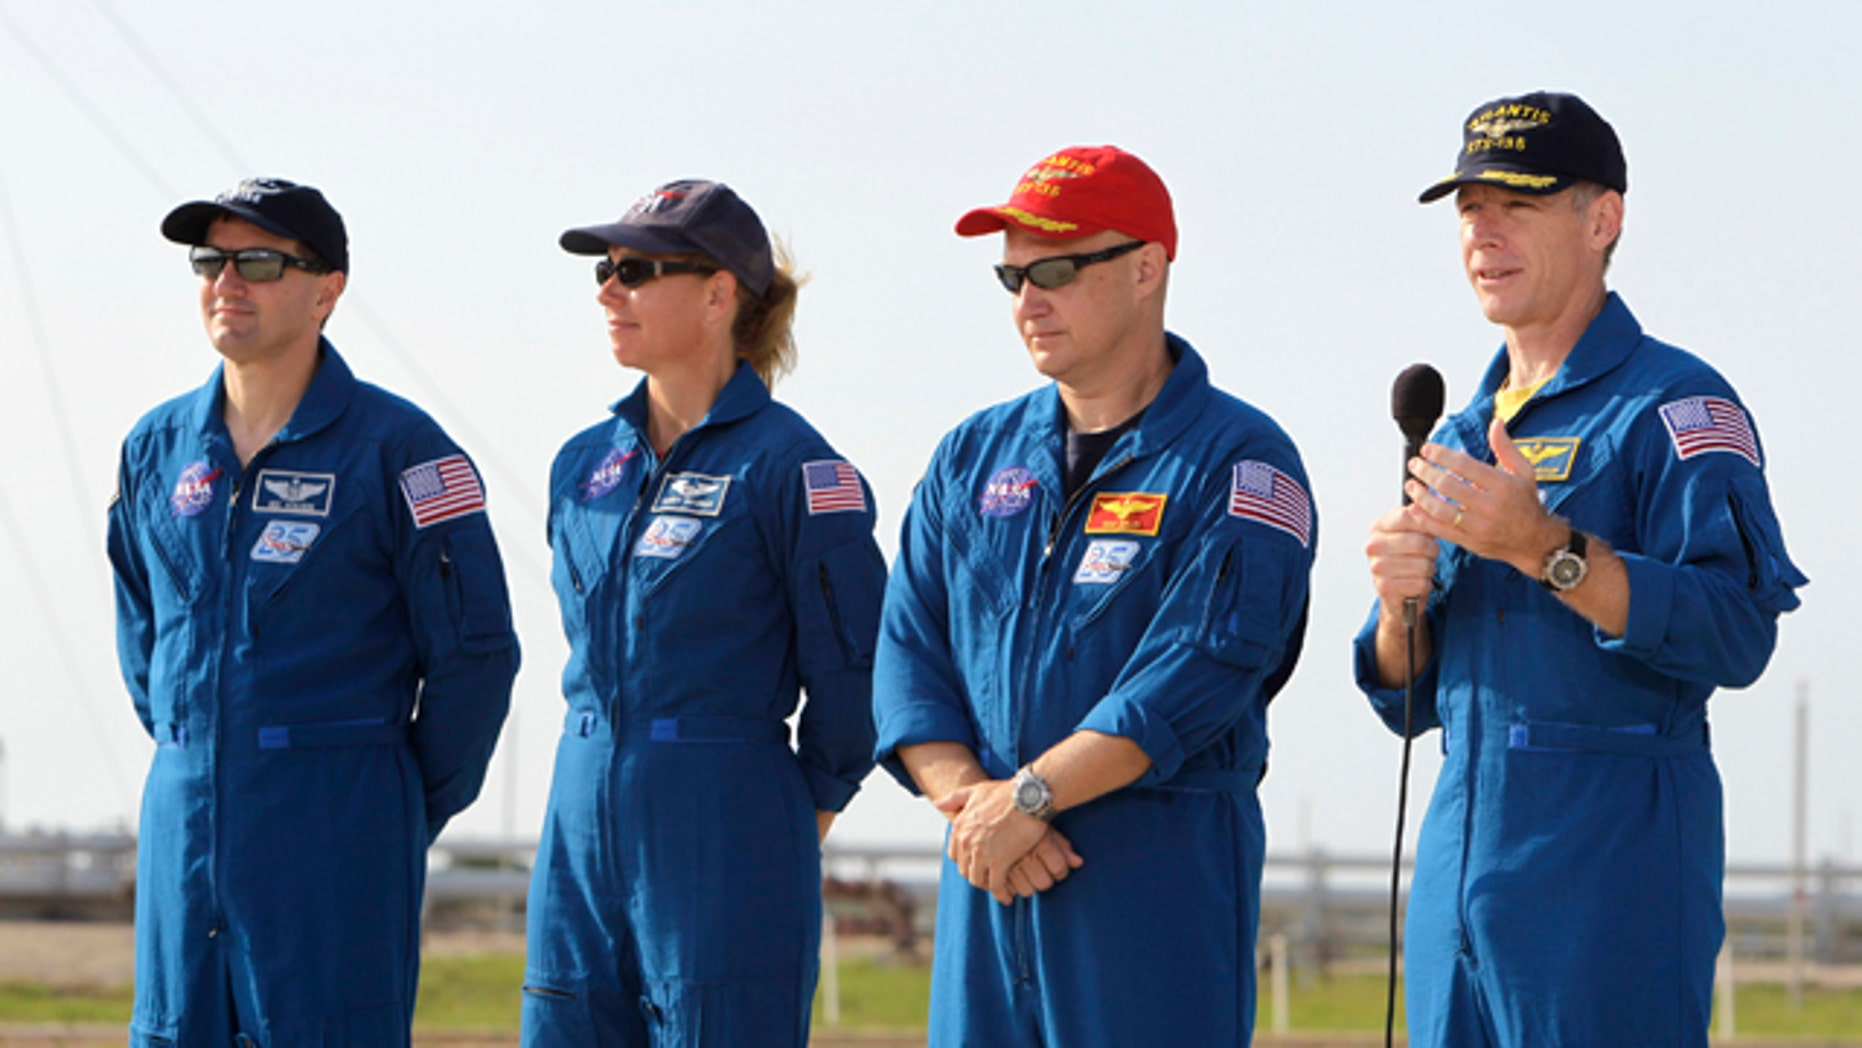 The crew of space shuttle Atlantis, from left, mission specialist Rex Walhiem, mission specialist Sandy Magnus, pilot Doug Hurley and commander Chris Ferguson attend a news conference at Pad 39A during the Terminal Countdown Demonstration Test at the Kennedy Space Center in Cape Canaveral, Fla., Wednesday, June 22, 2011.